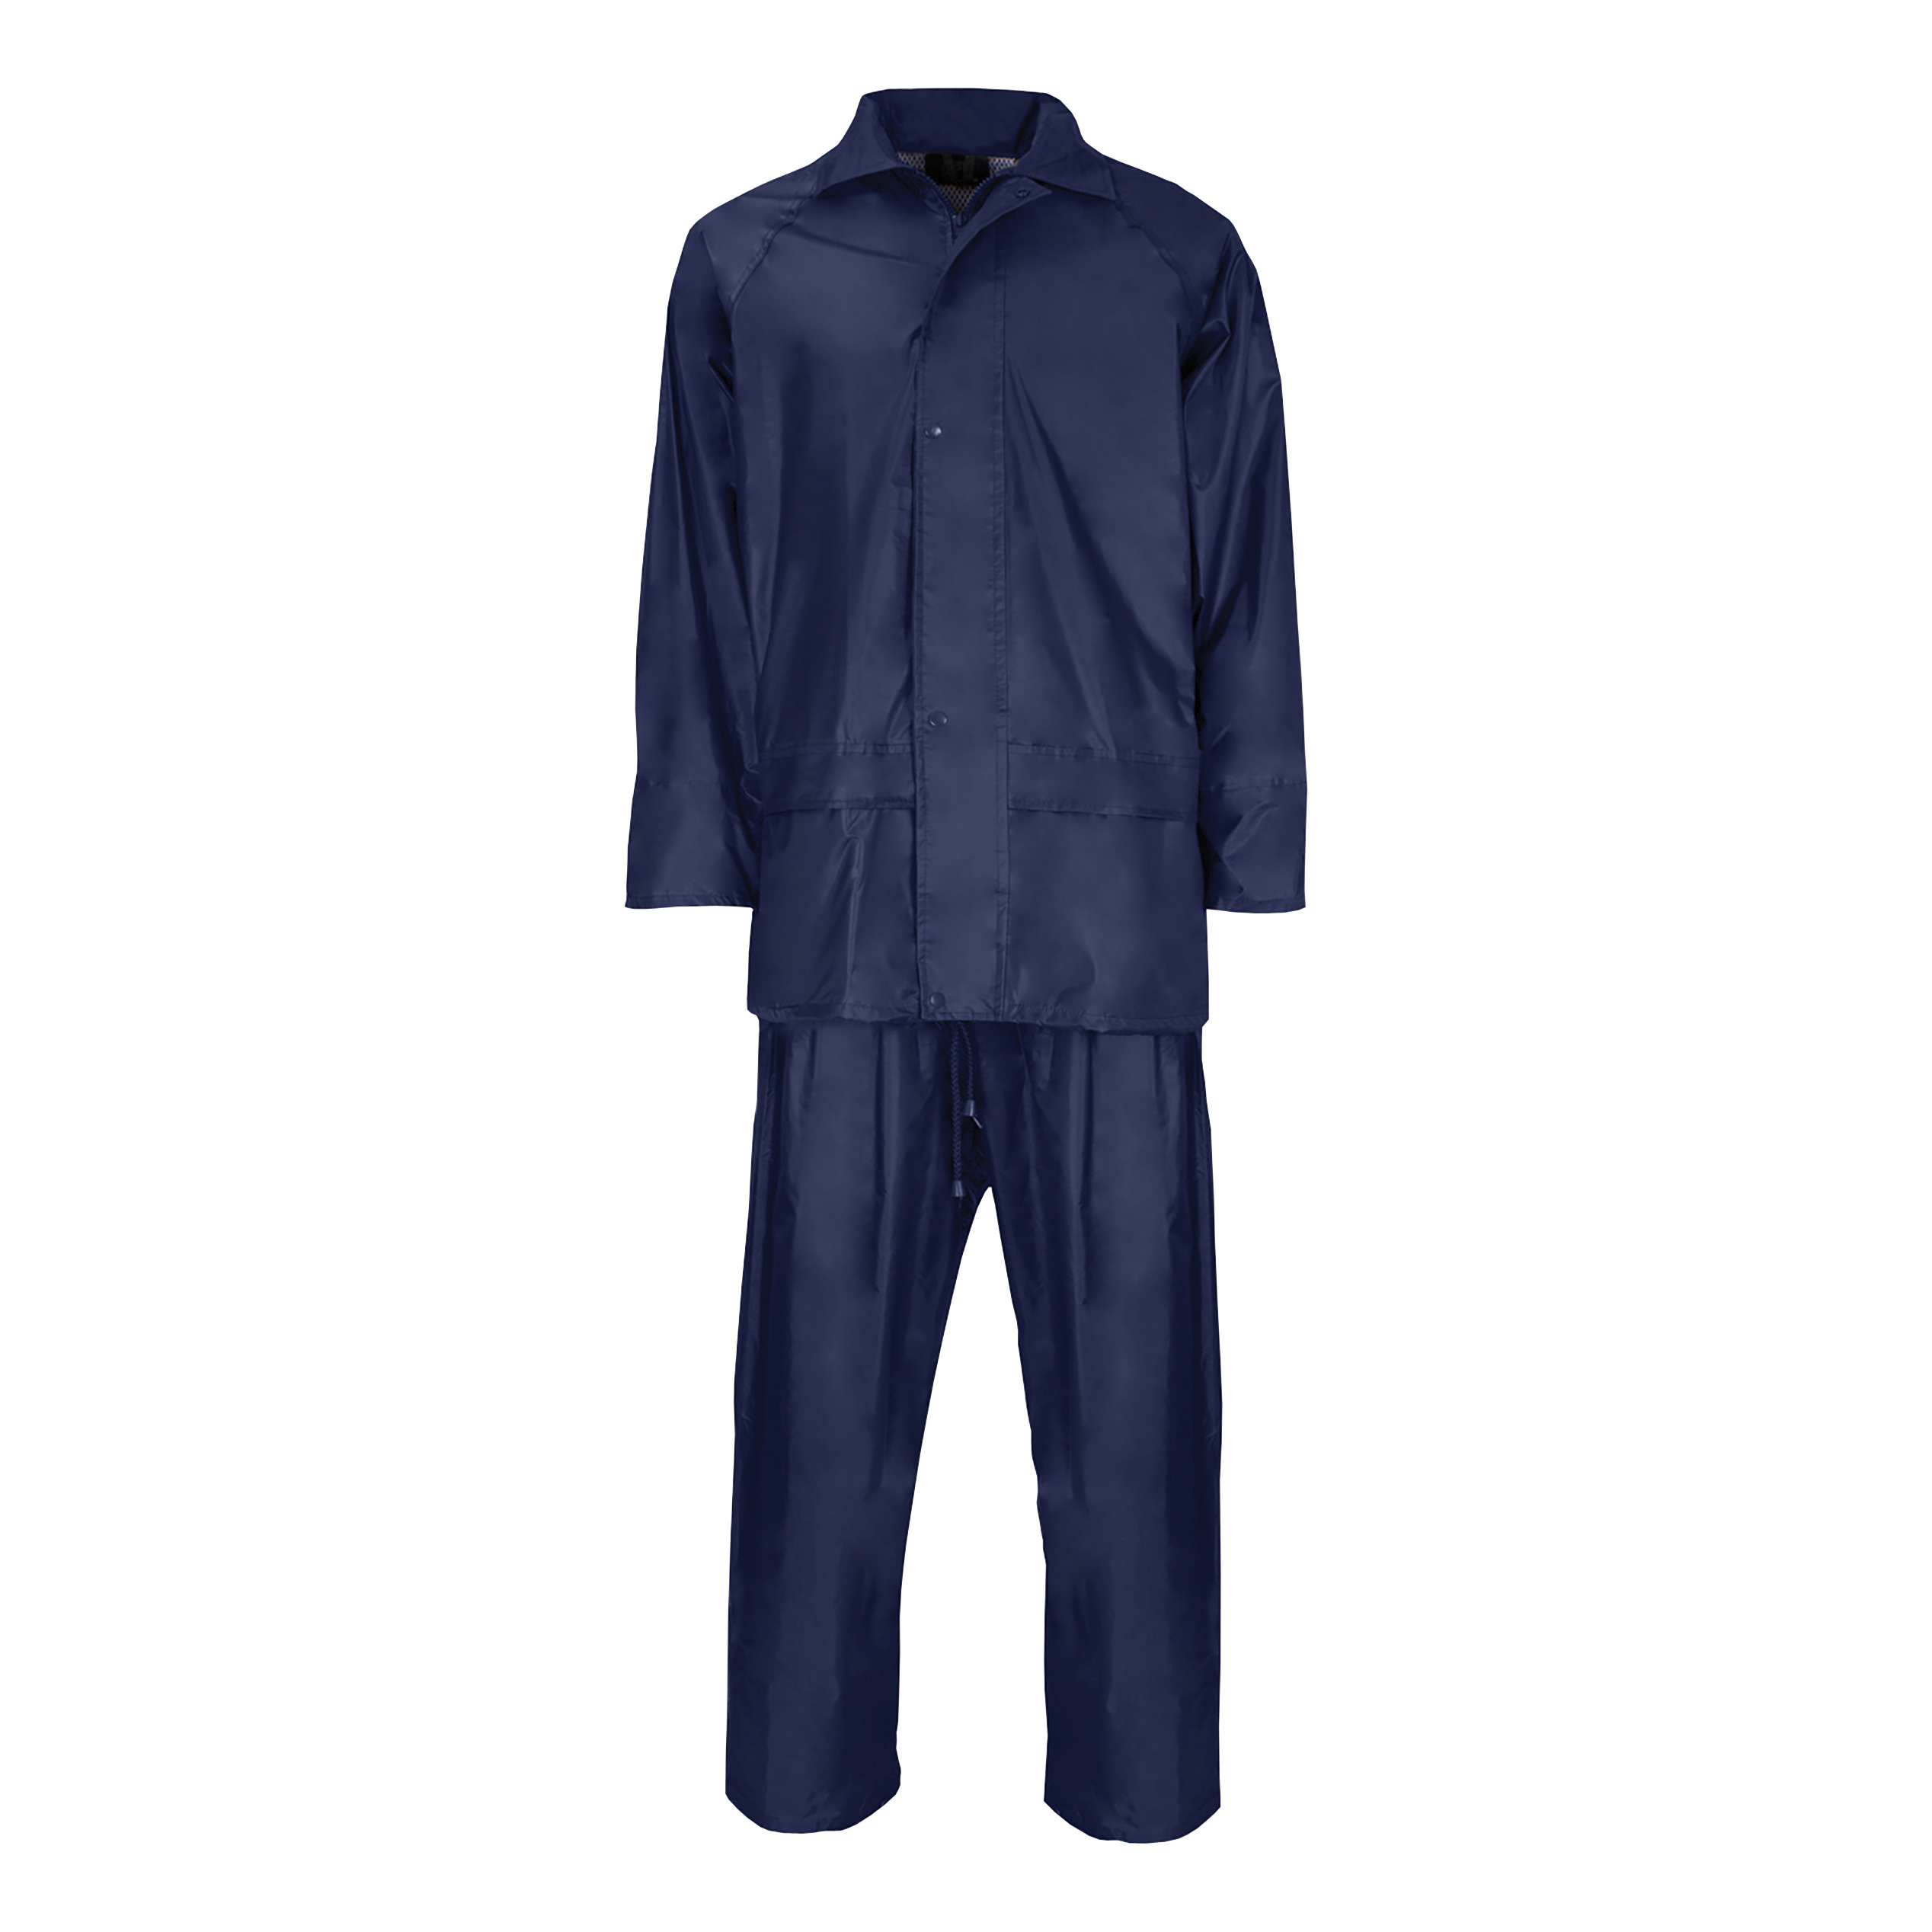 Rainsuit Poly/PVC with Elasticated Waisted Trousers XL Navy *Approx 3 Day Leadtime*